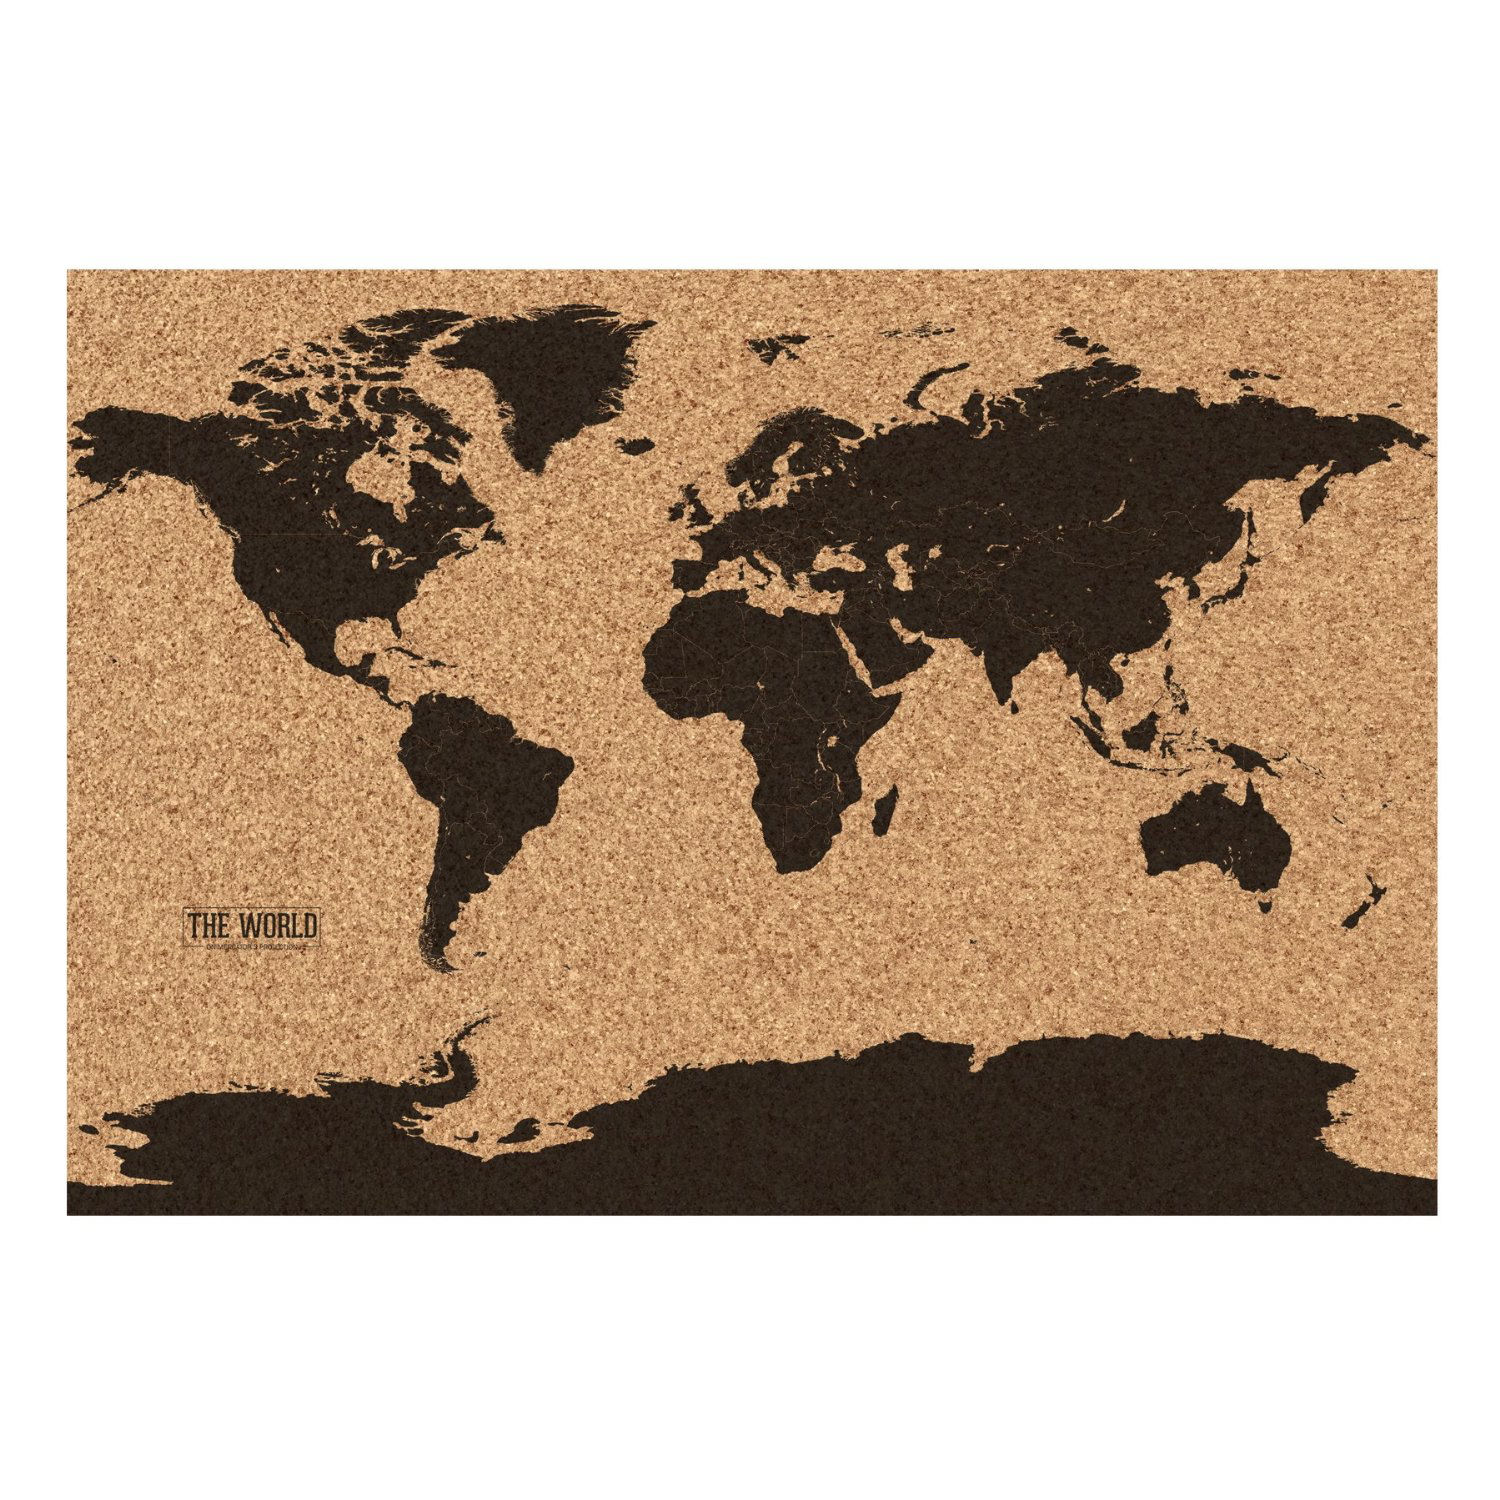 World map cork board vintage retro wall art kitchen notes travel world map cork board vintage retro wall art kitchen notes travel holiday gift gumiabroncs Images